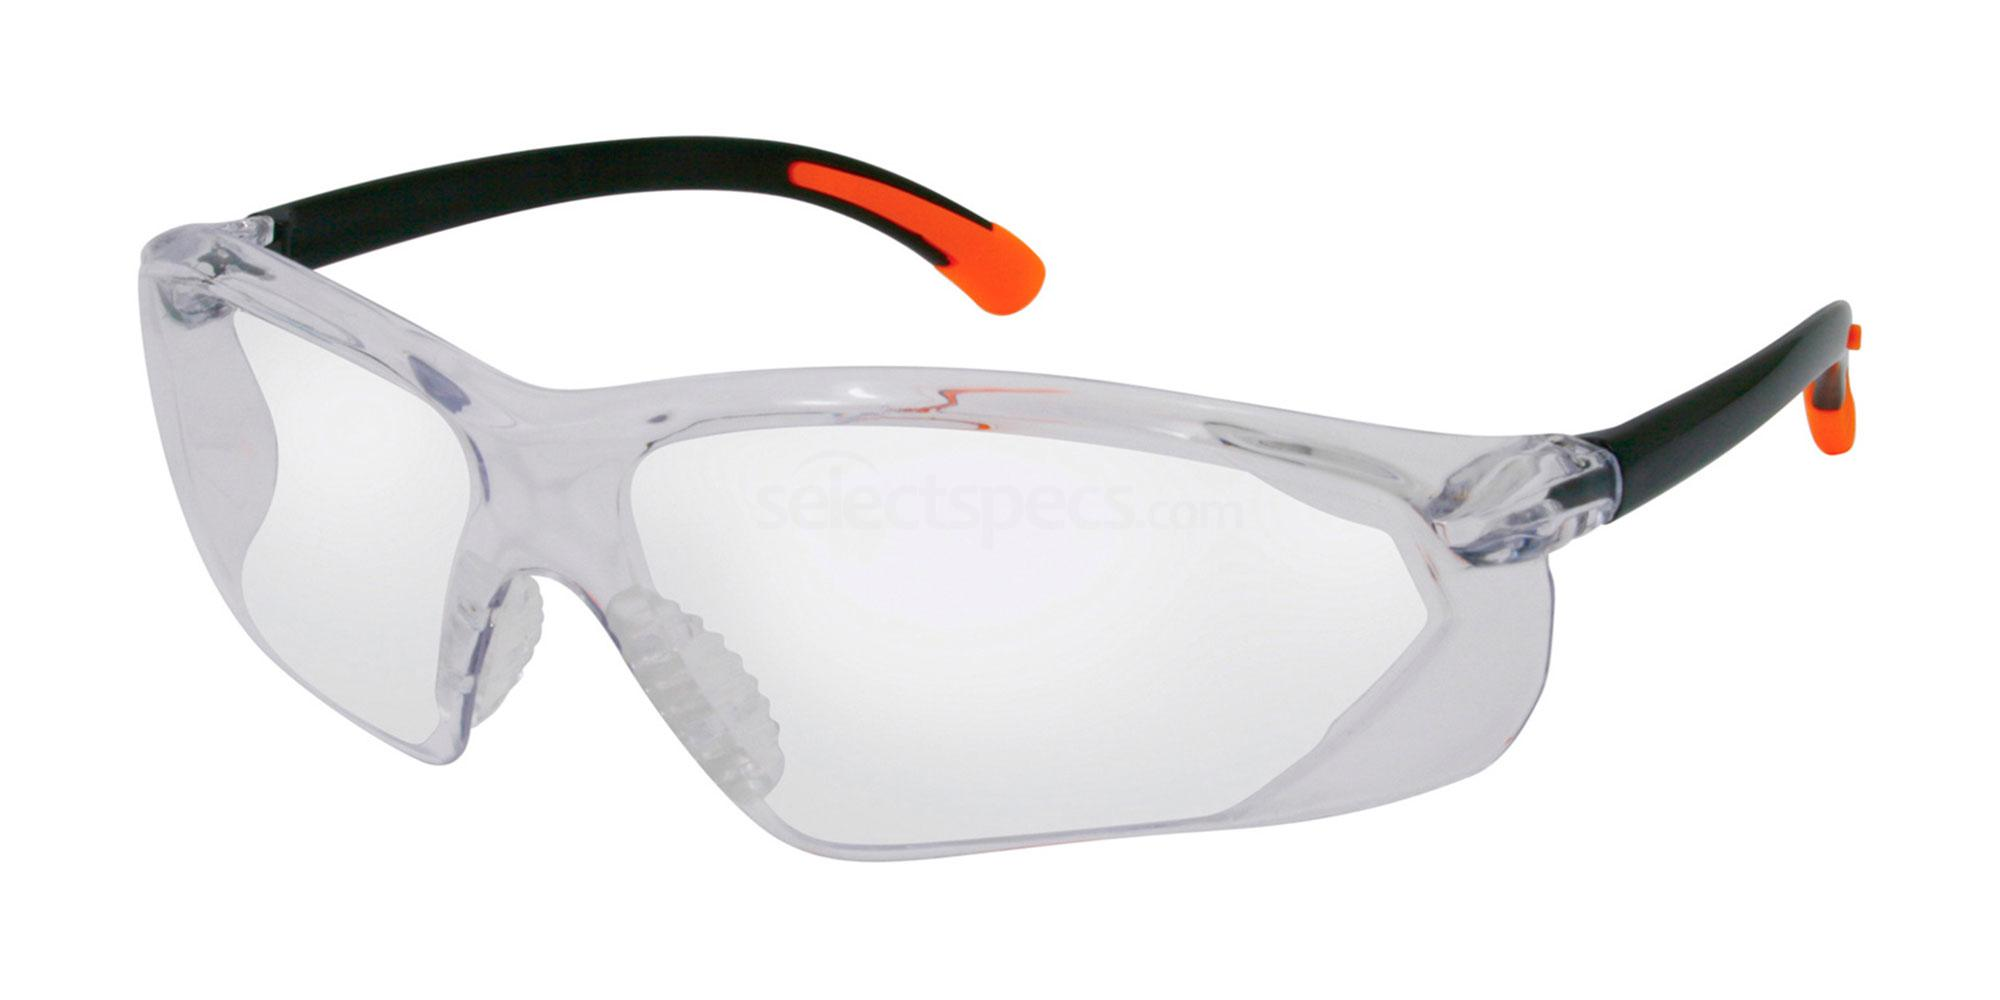 Black/Orange S737 (Plano Protector) Accessories, Sports Eyewear